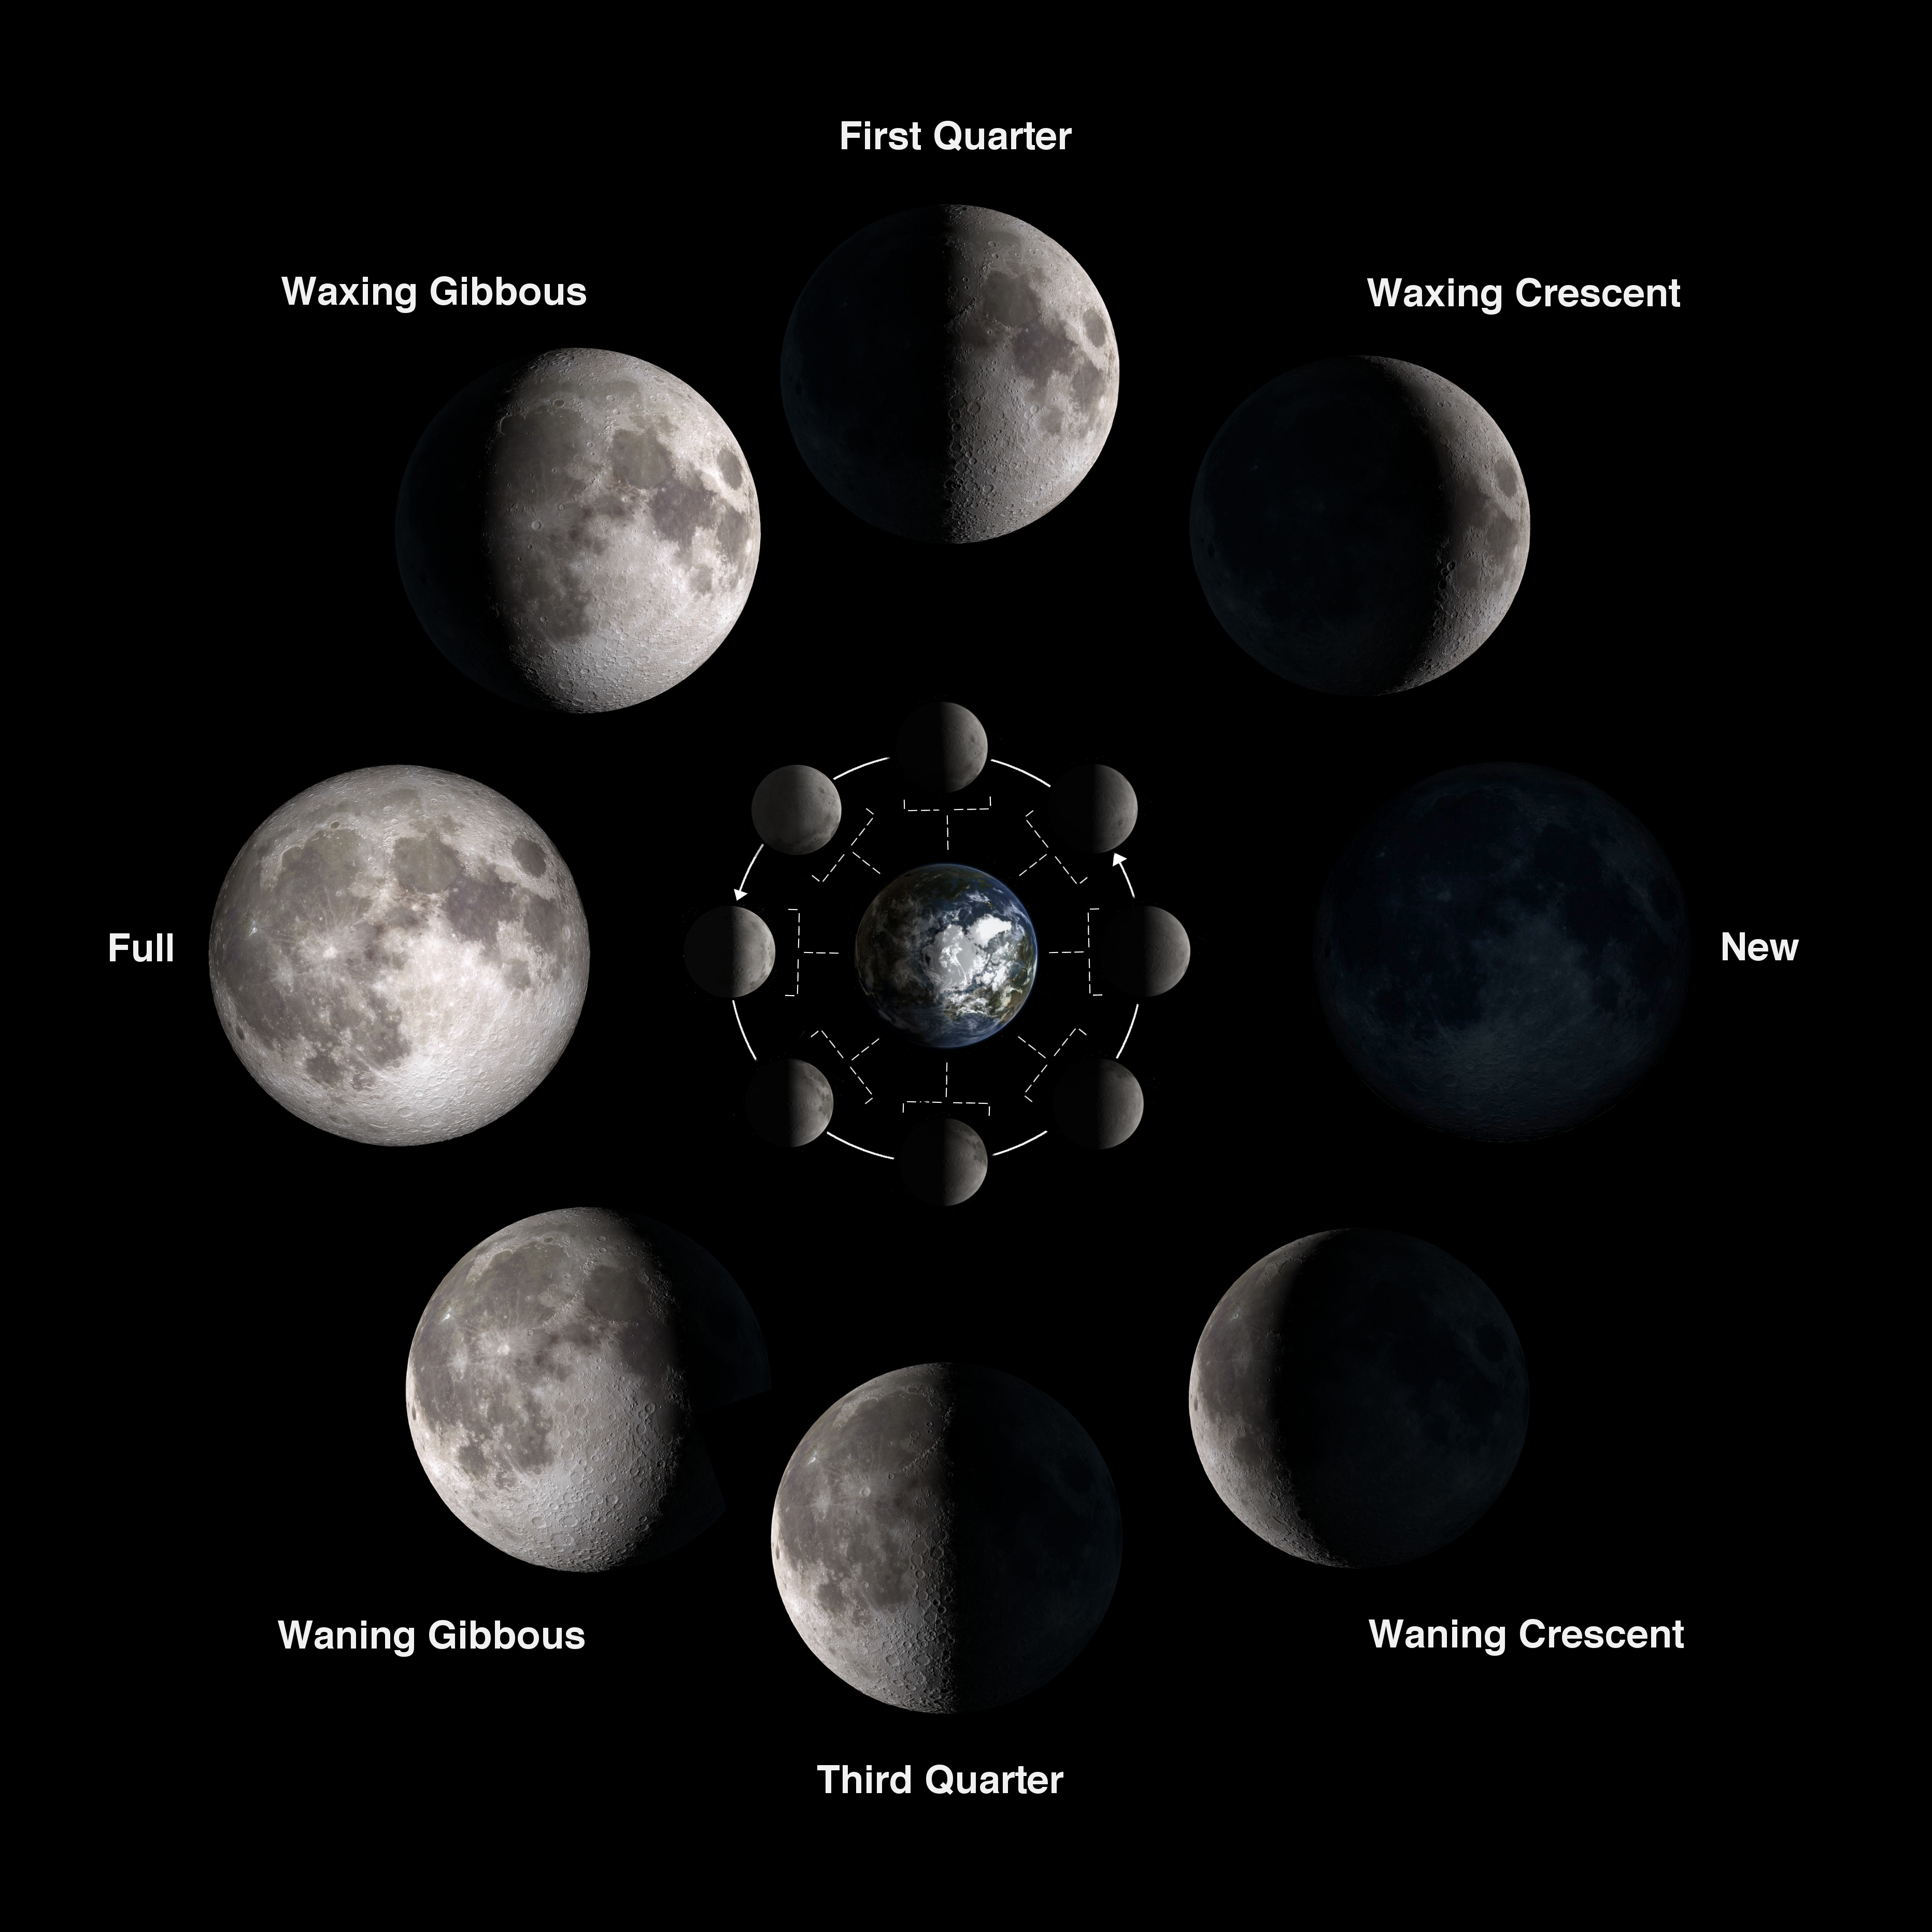 The Phases of the Moon shown next to their location around Earth relative to the Sun